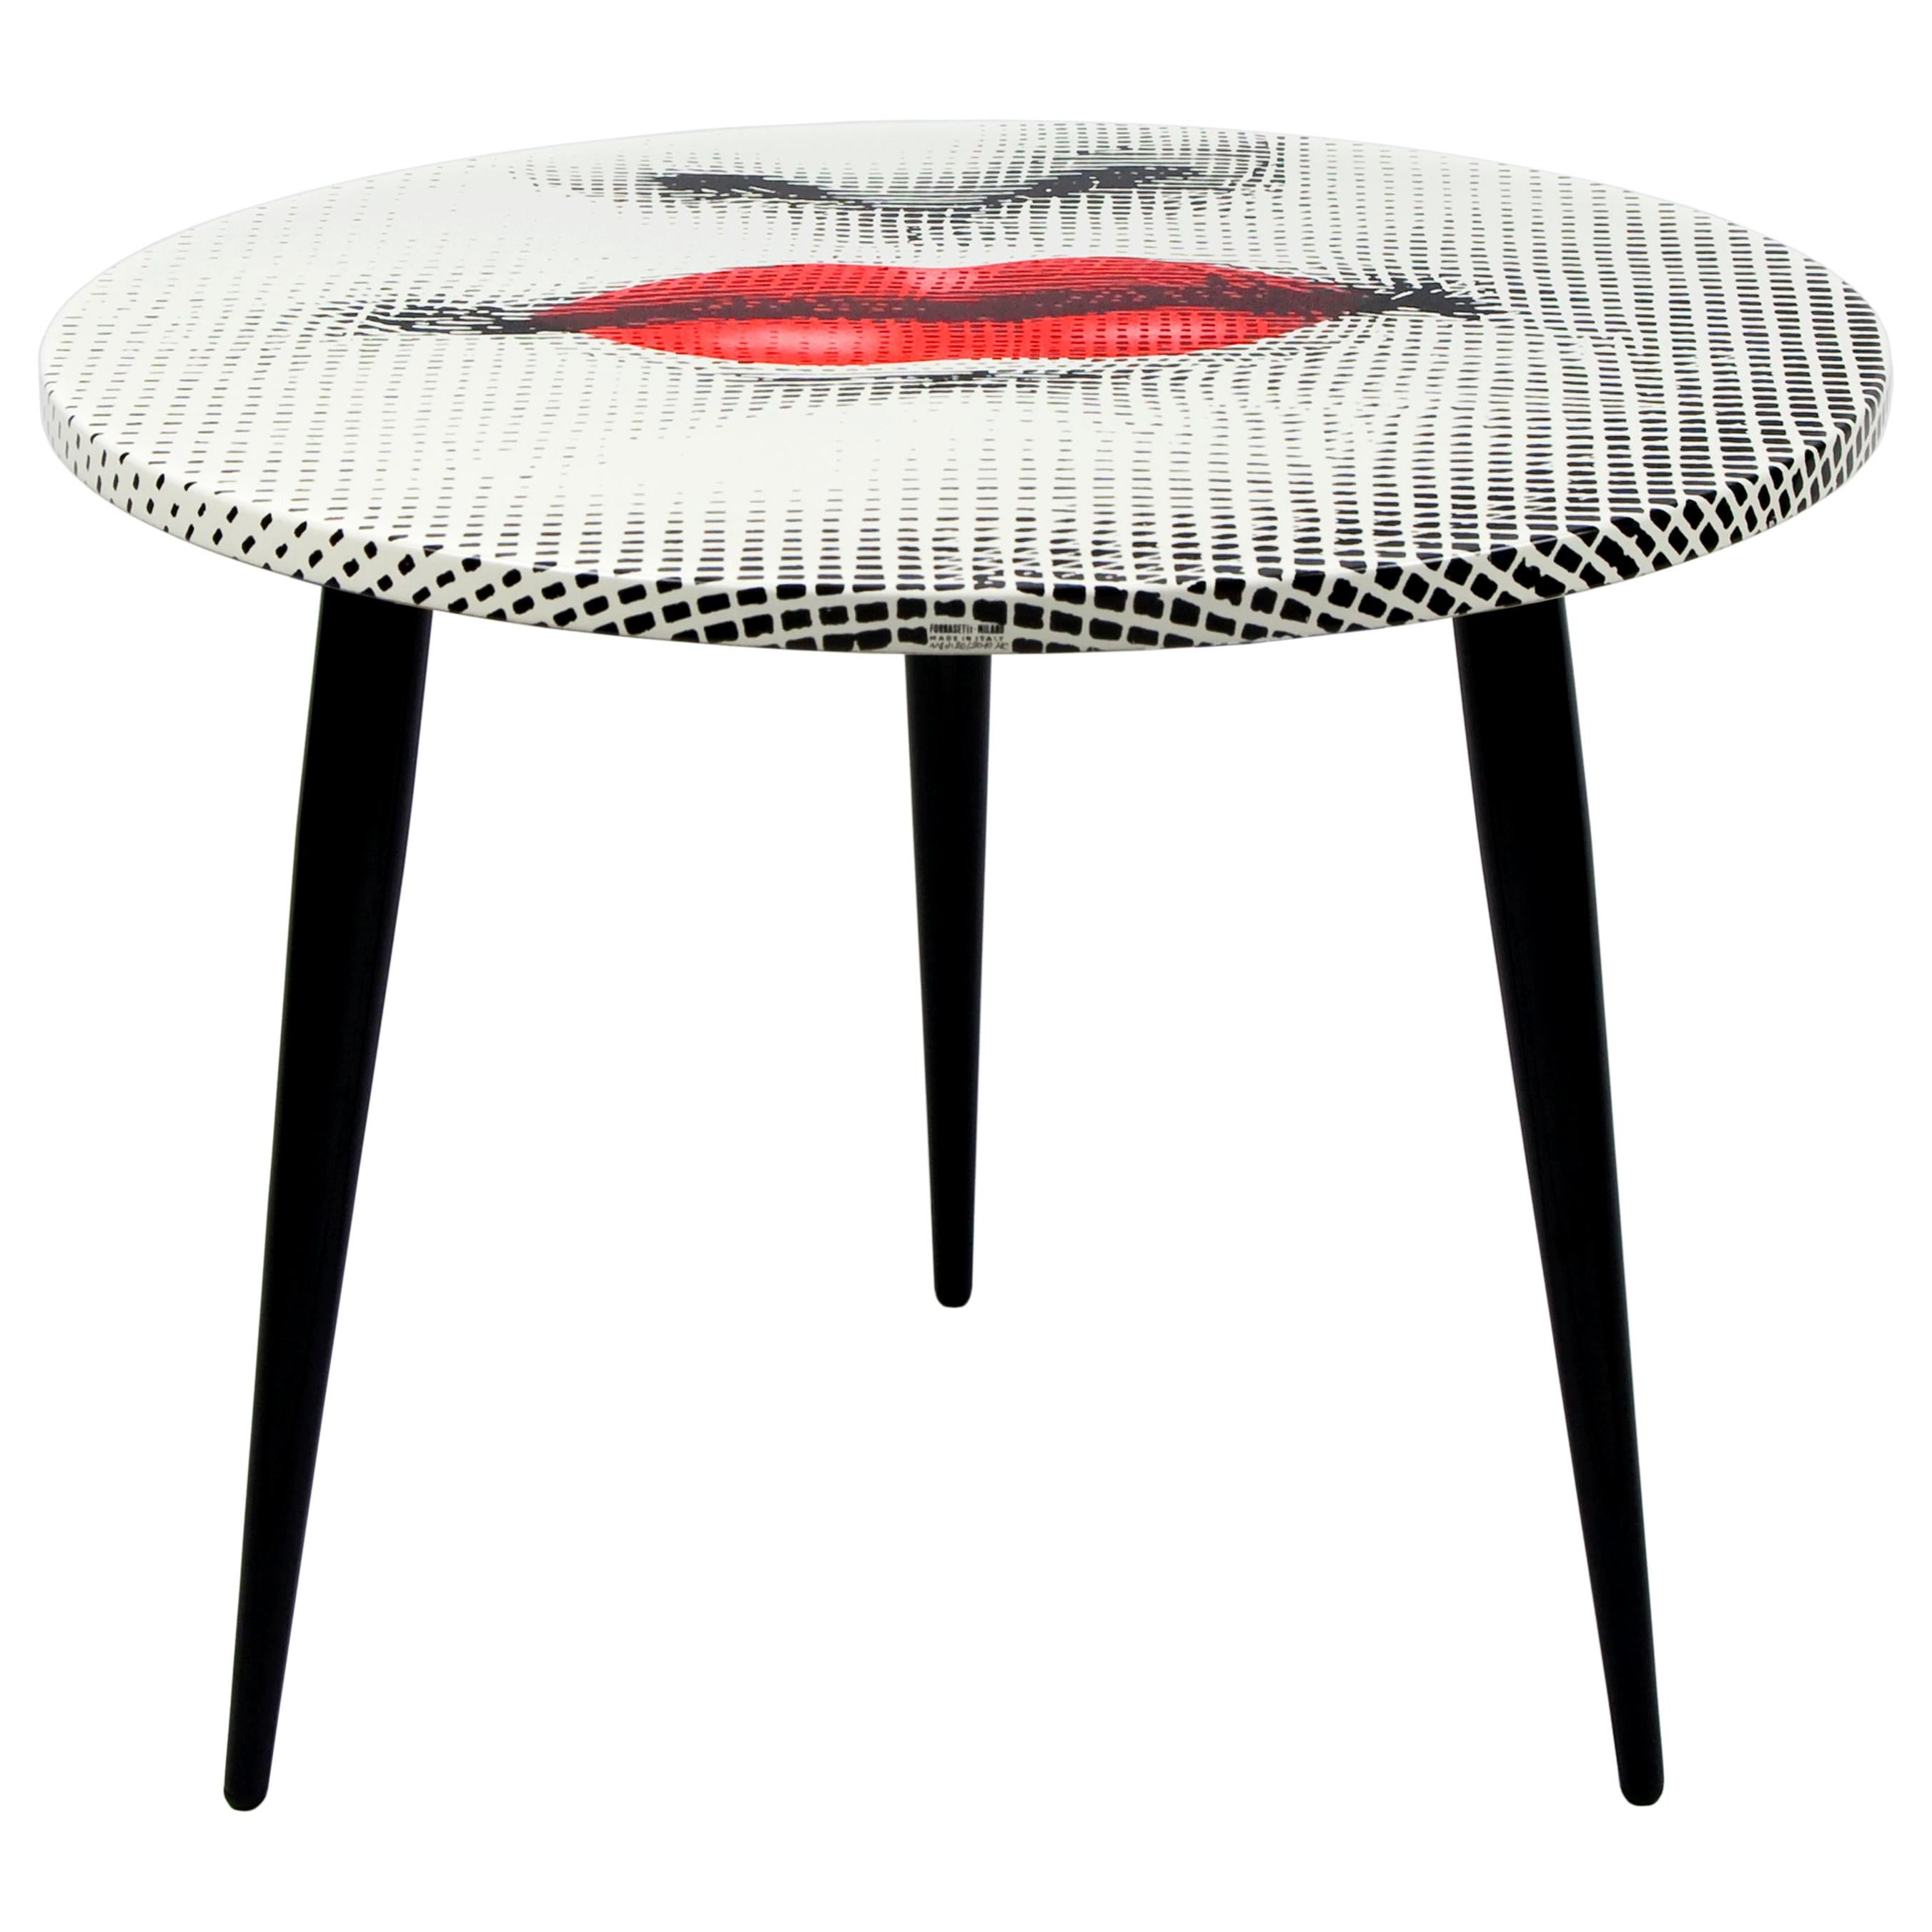 Fornasetti Table Top Bocca Red Lips Hand Colored, Wooden Legs